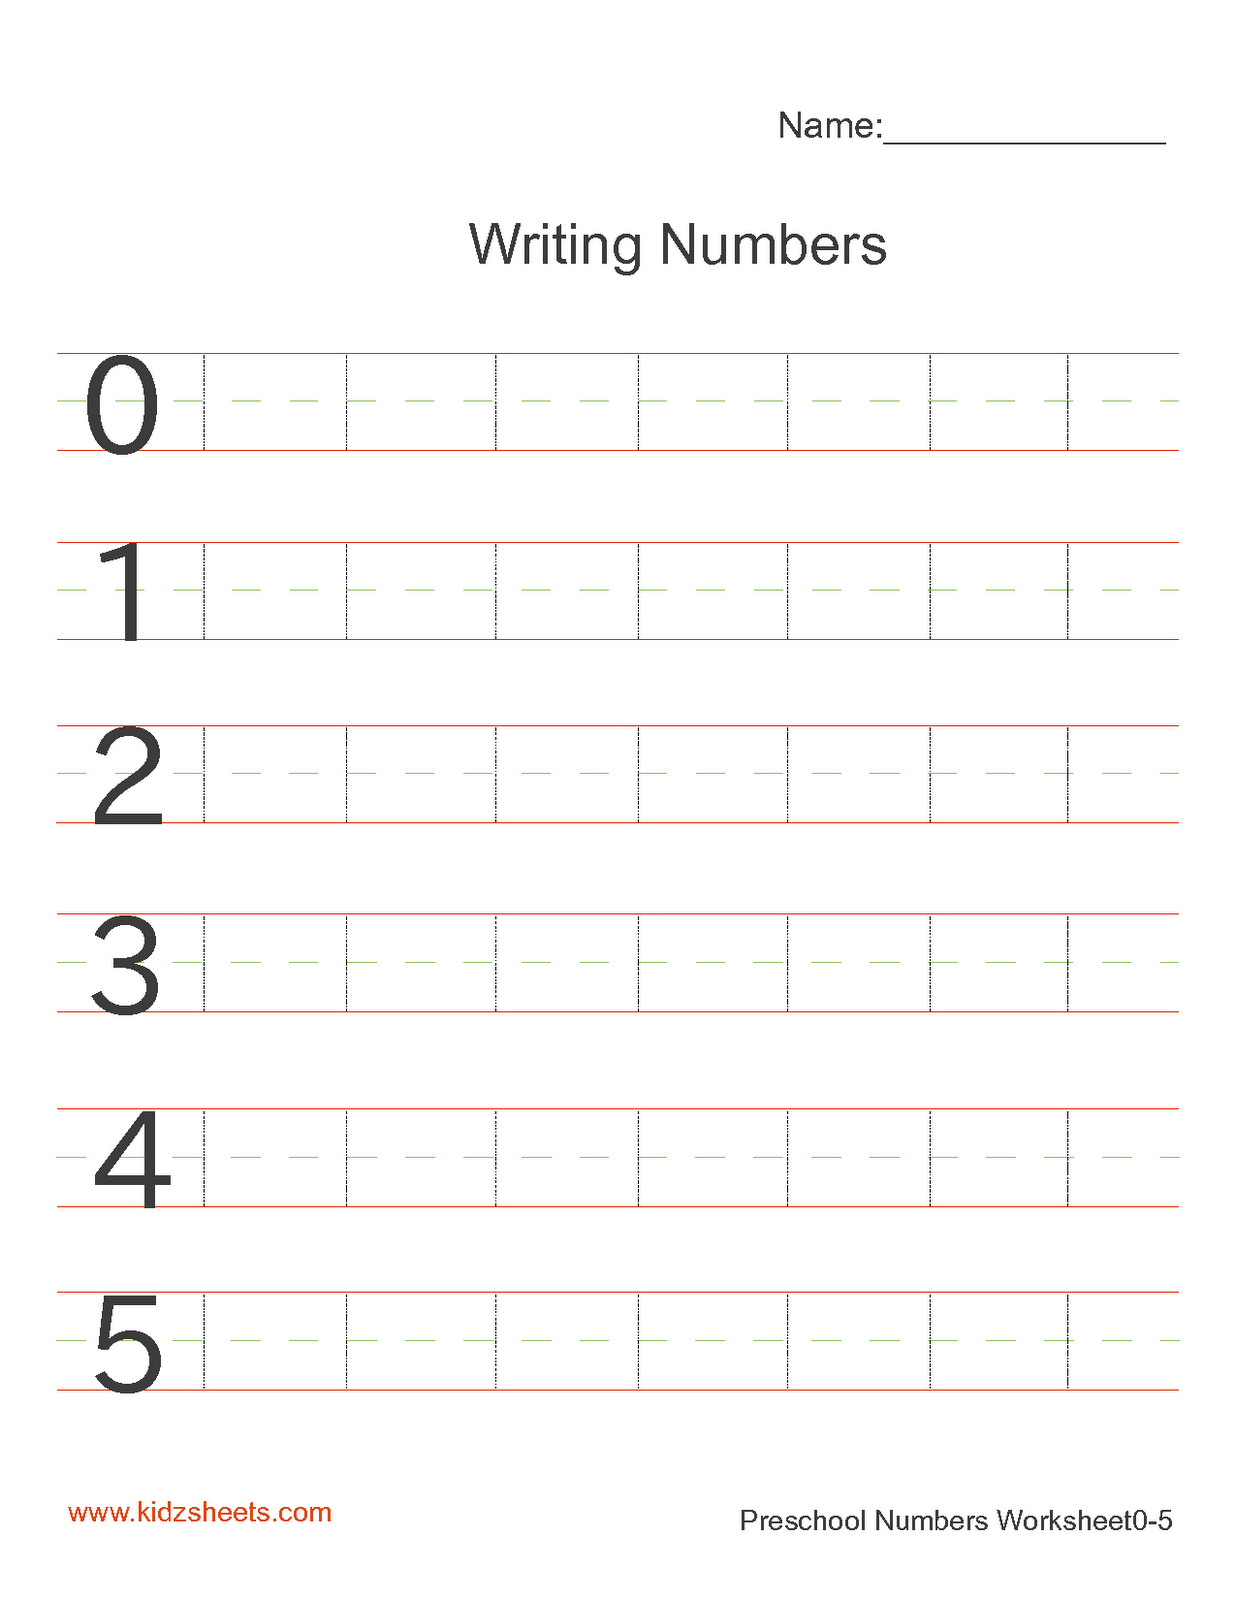 Free Printable Preschool Writing Numbers Worksheets, Free Worksheets ...